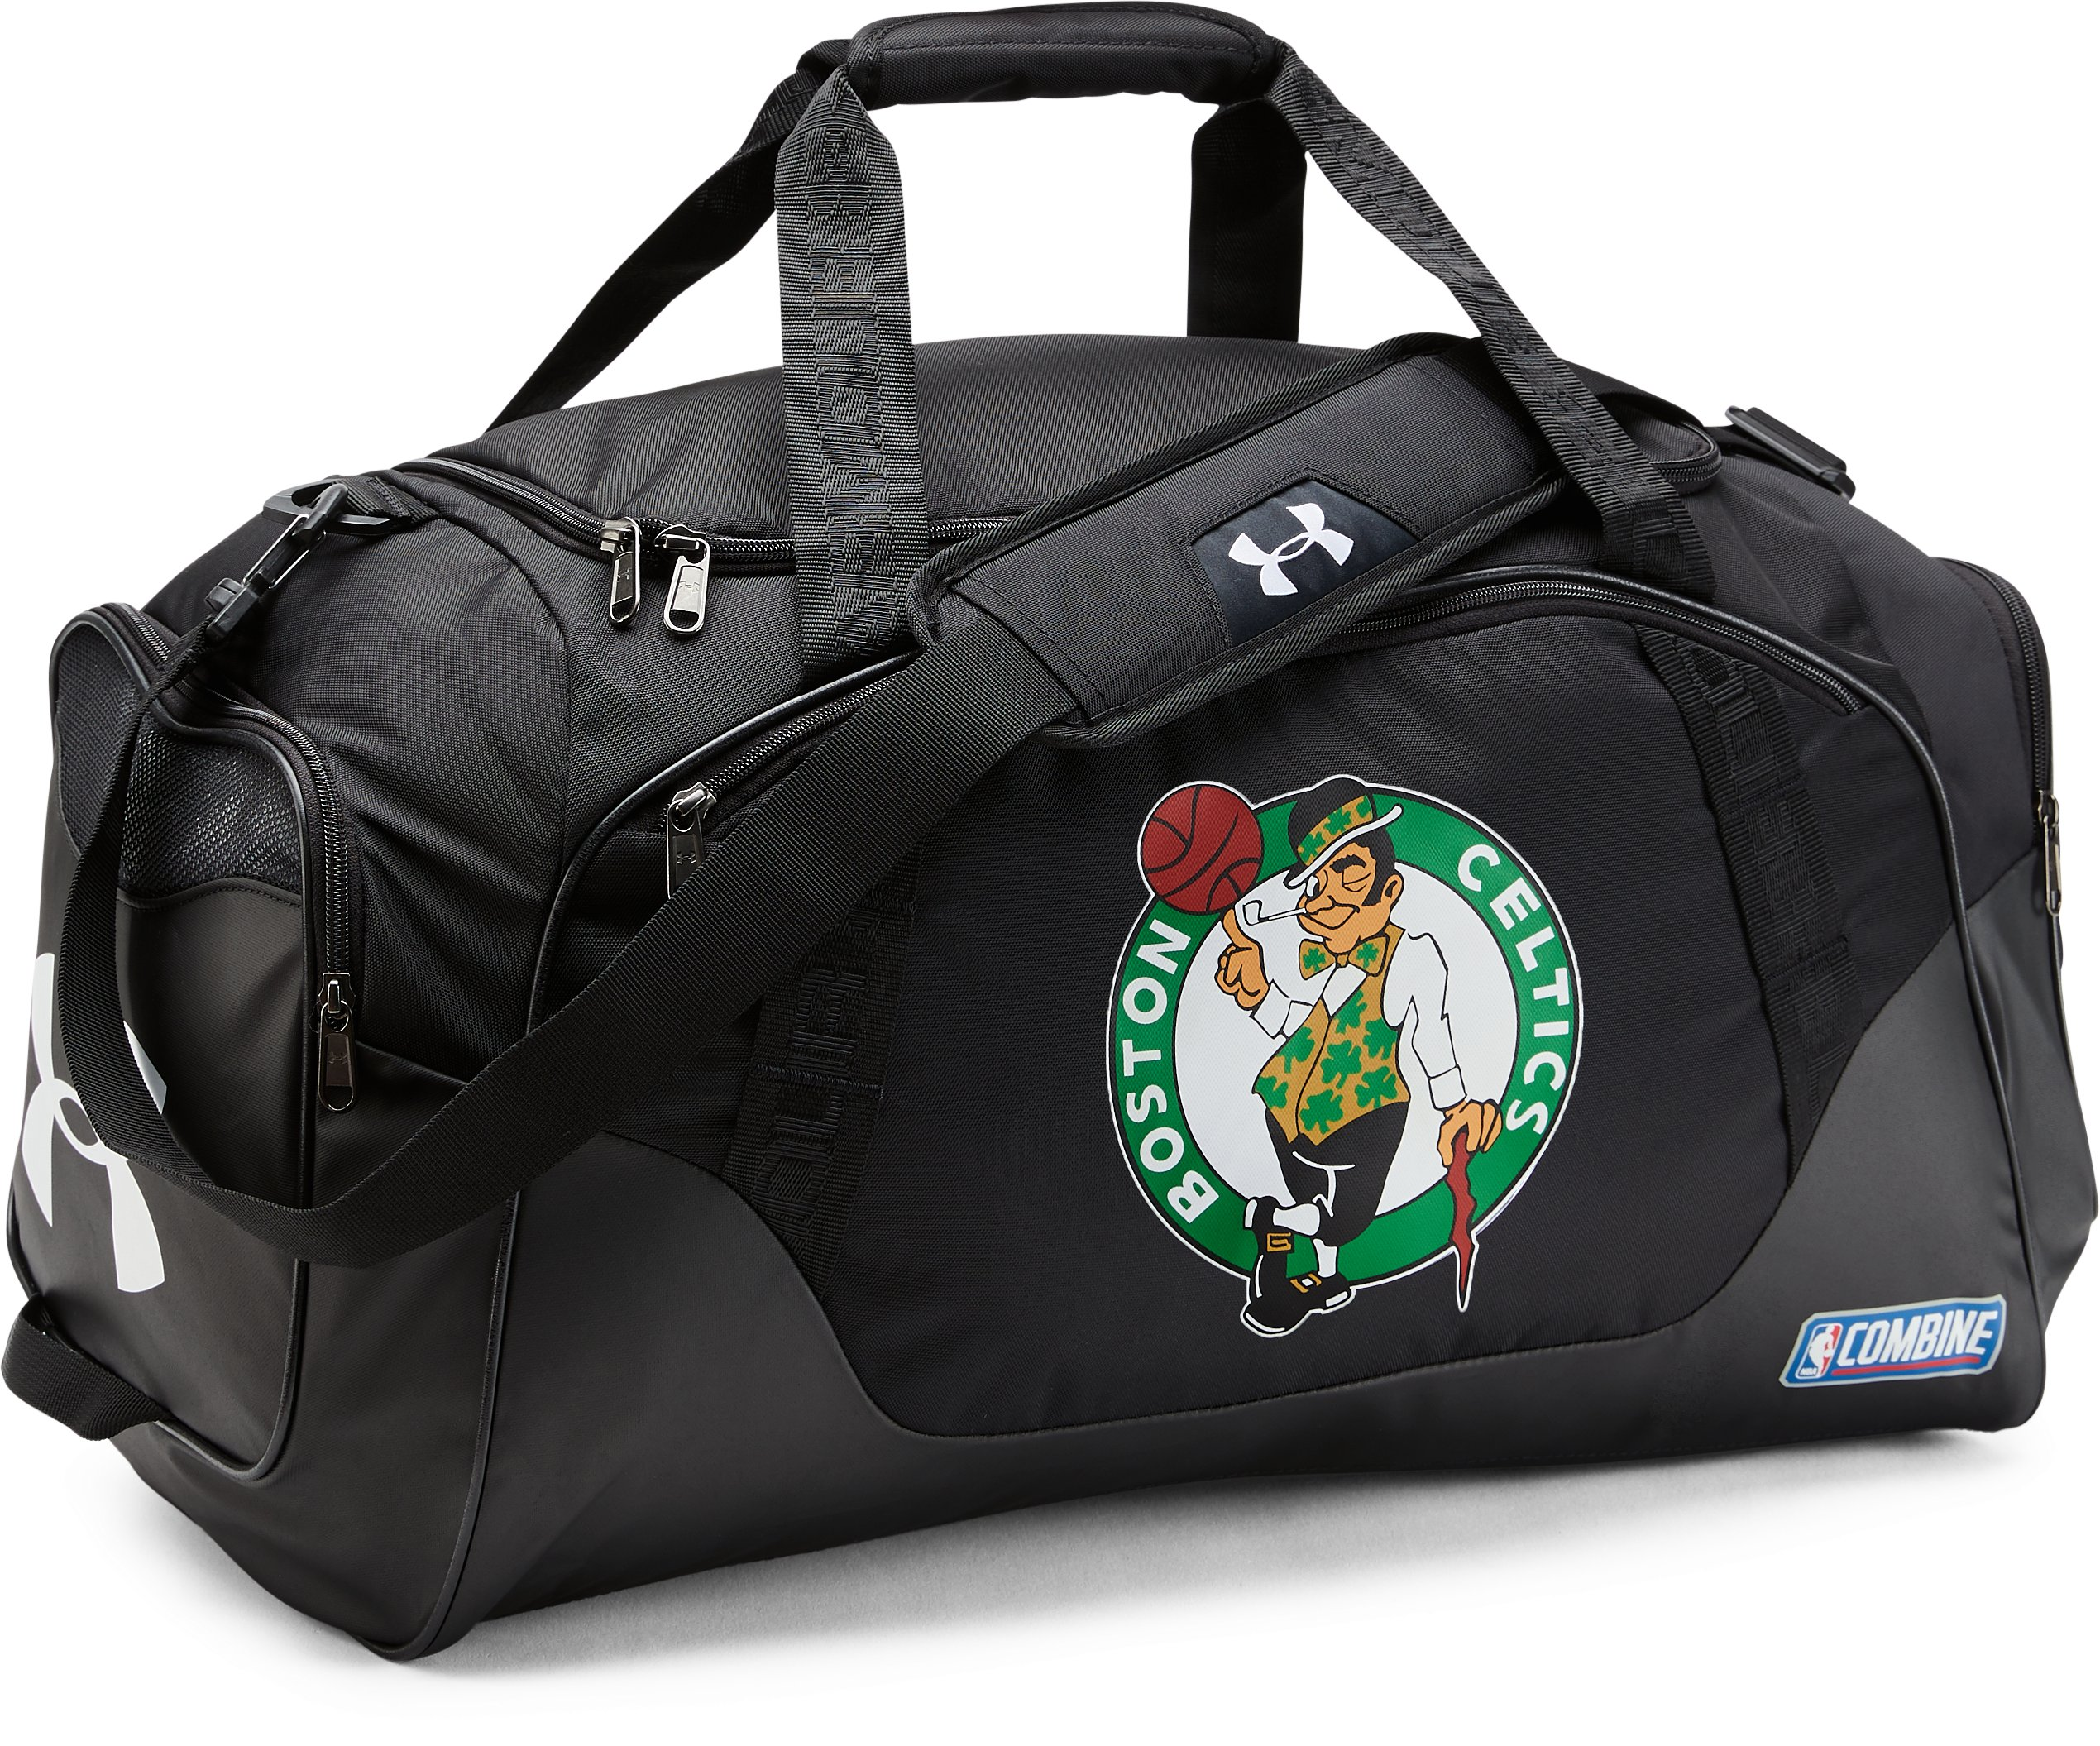 NBA Combine Undeniable Duffle, NBA_BOSTON CELTICS_BLACK